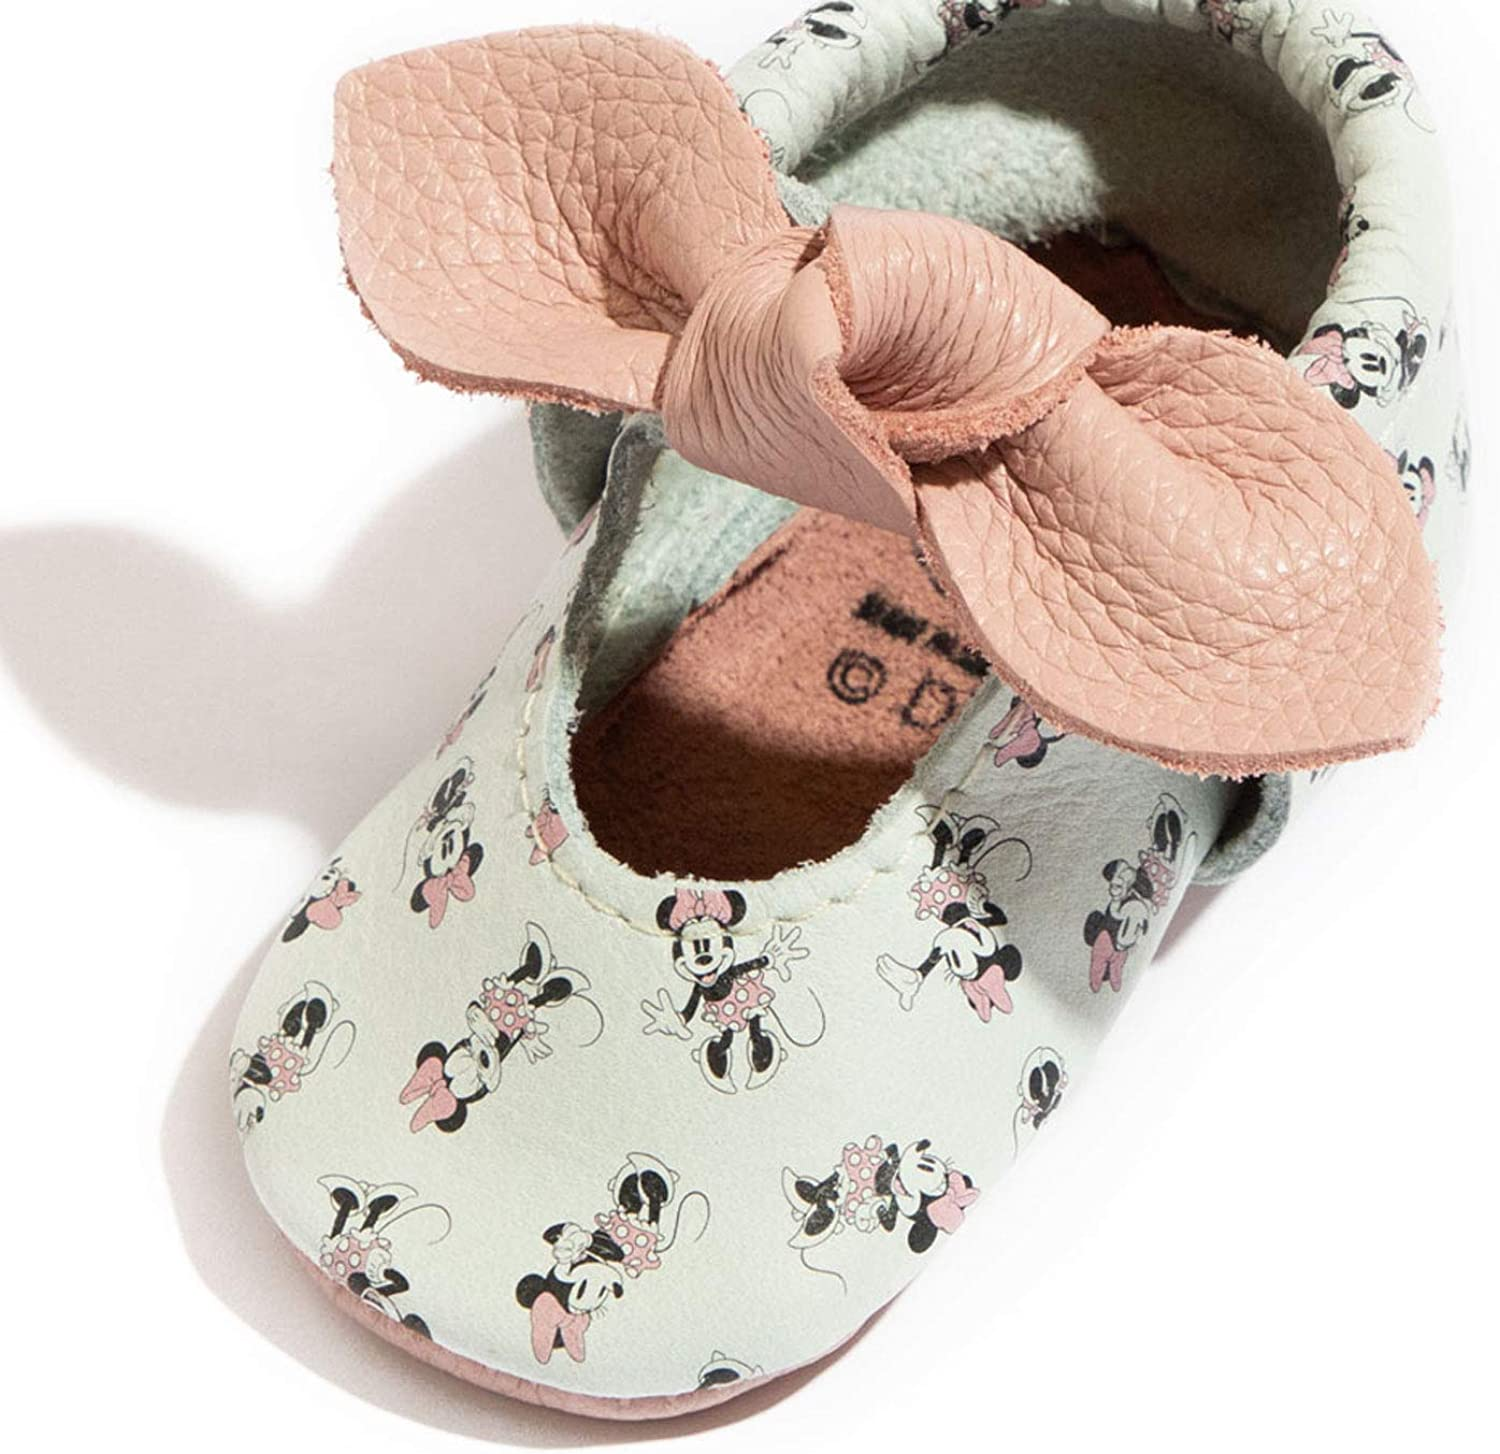 First Pair Soft Sole - All About Mini Knotted Bow Moccasins - Newborn Baby Girl Shoes - Size